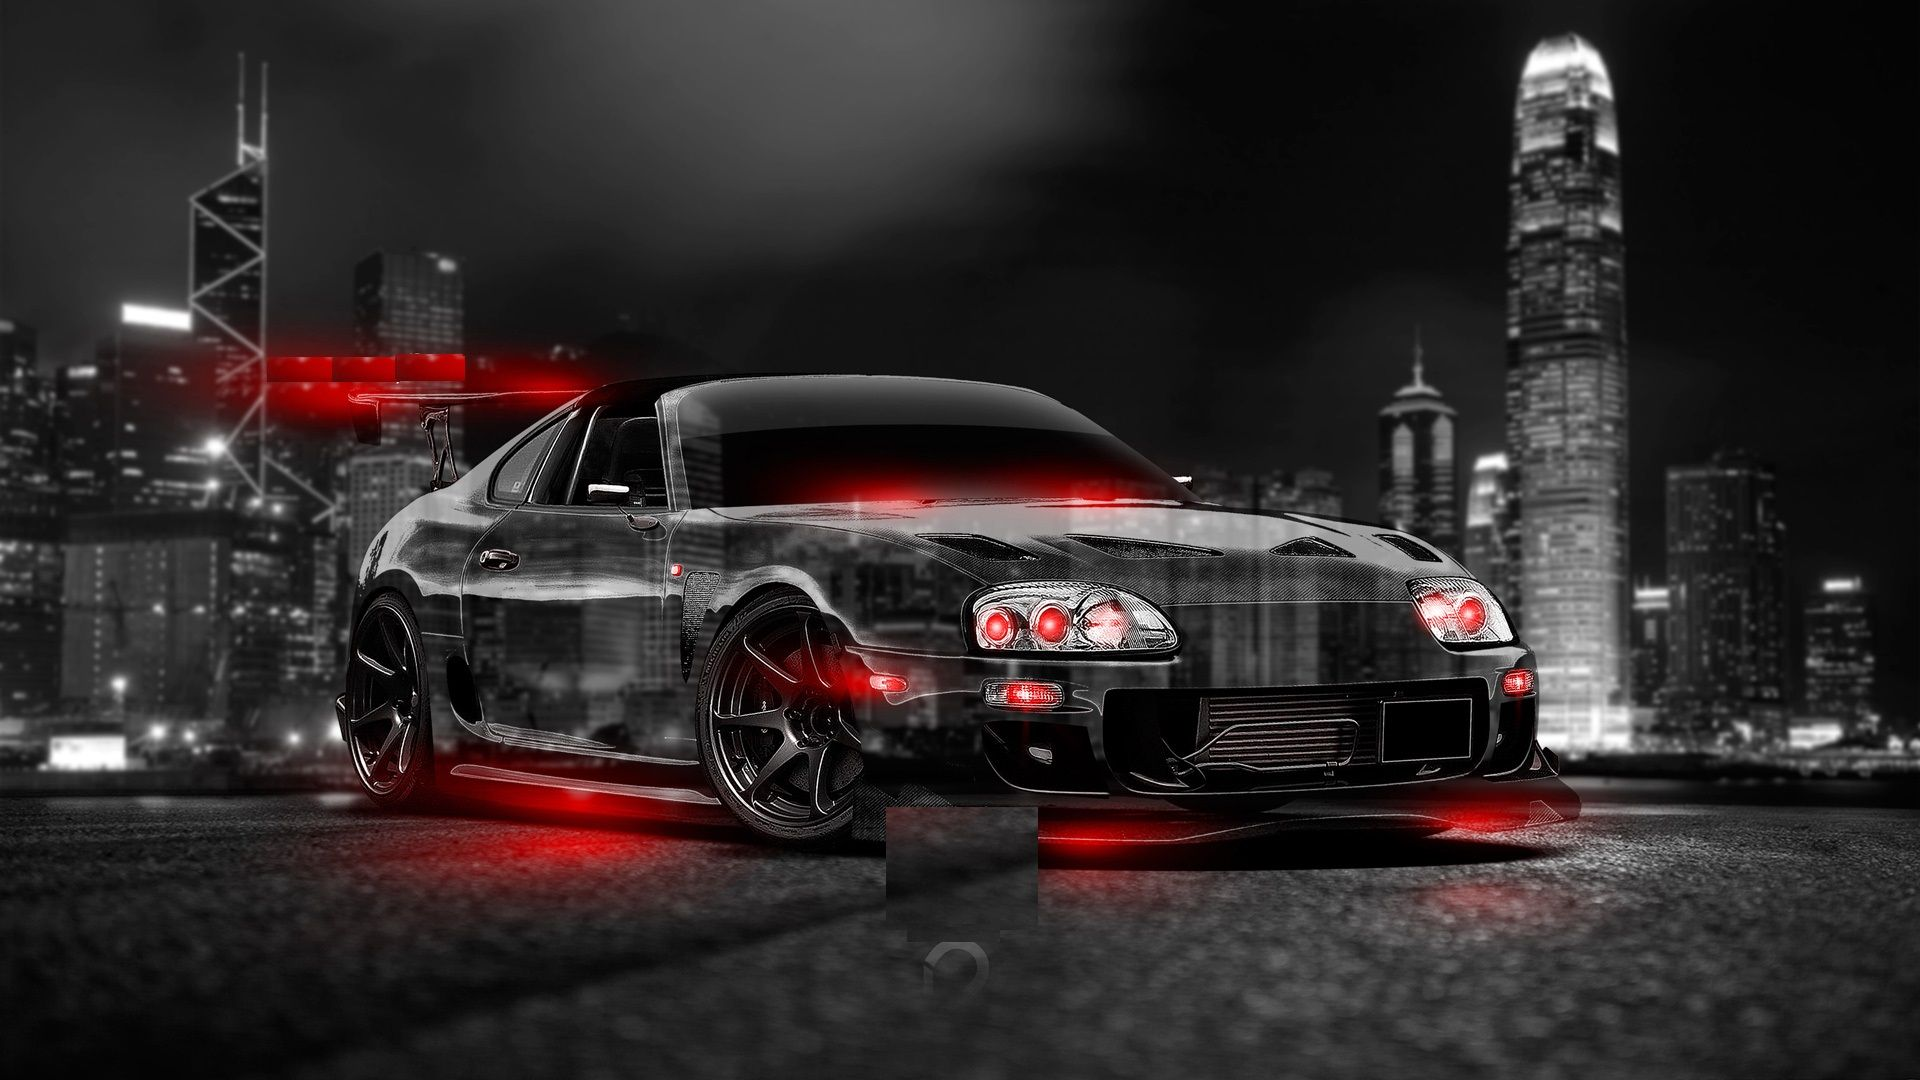 Charmant Toyota Supra Tuning JDM Super Abstract Car 2014 Violet HD Wallpapers Design By Tony Kokhan Www.el Tony.com_  (1920×1080) | TOYOTA ♉♉♉ | Pinterest | ...